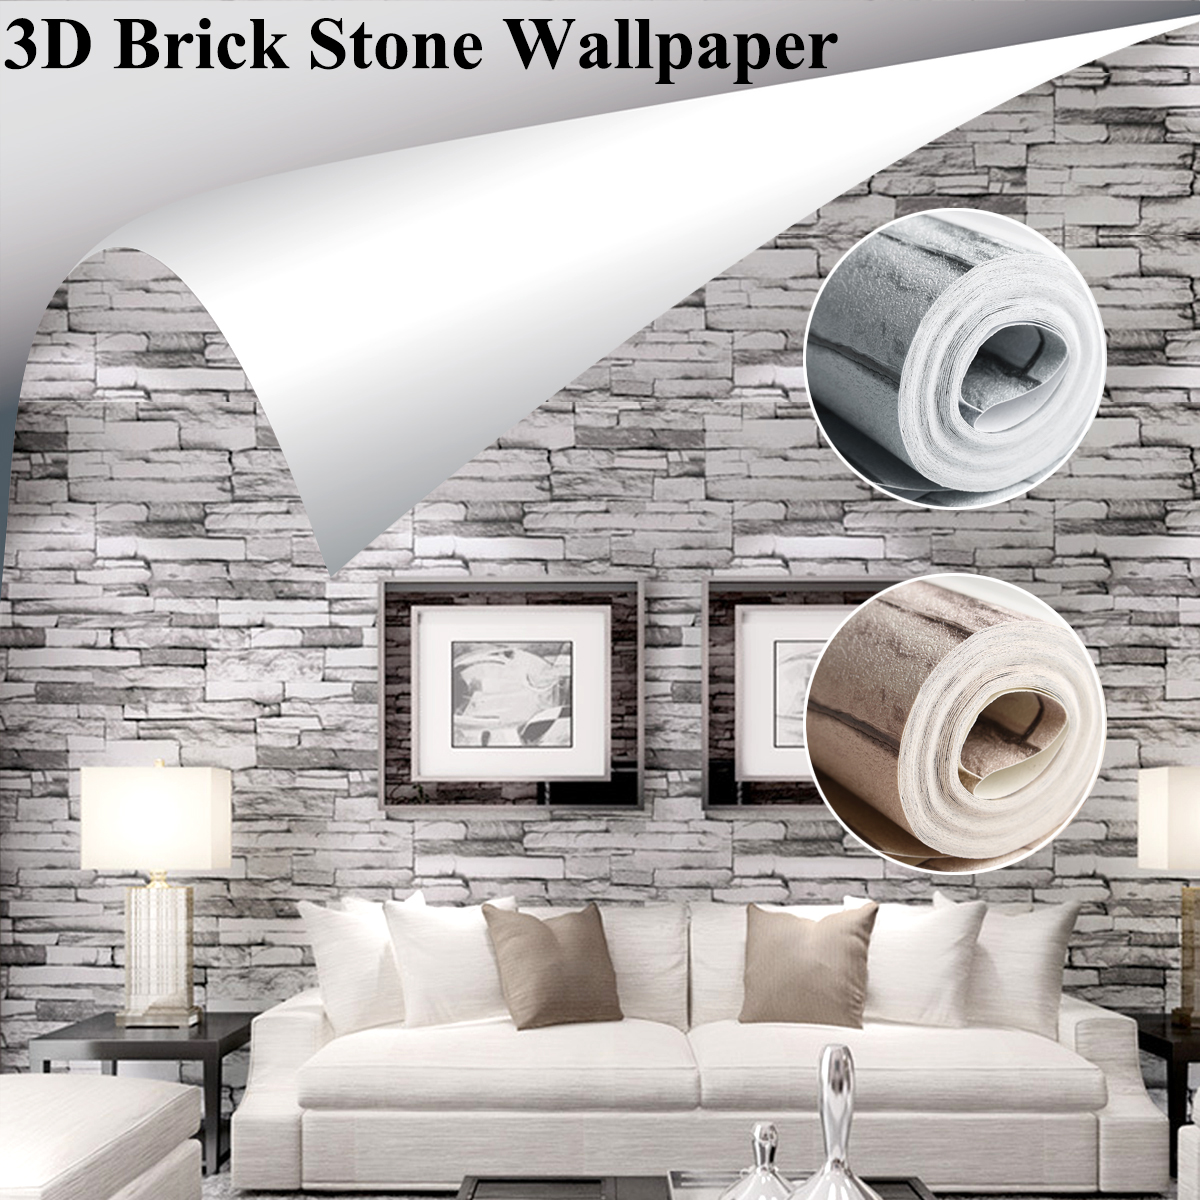 Modern 3D Brick Stone Wallpaper Vintage Brick Pattern For Living Room Wall Sticker Decor Waterproof TV Sofa Background блок питания kromatech 04091b002 сетевая зарядка з у автомобильное